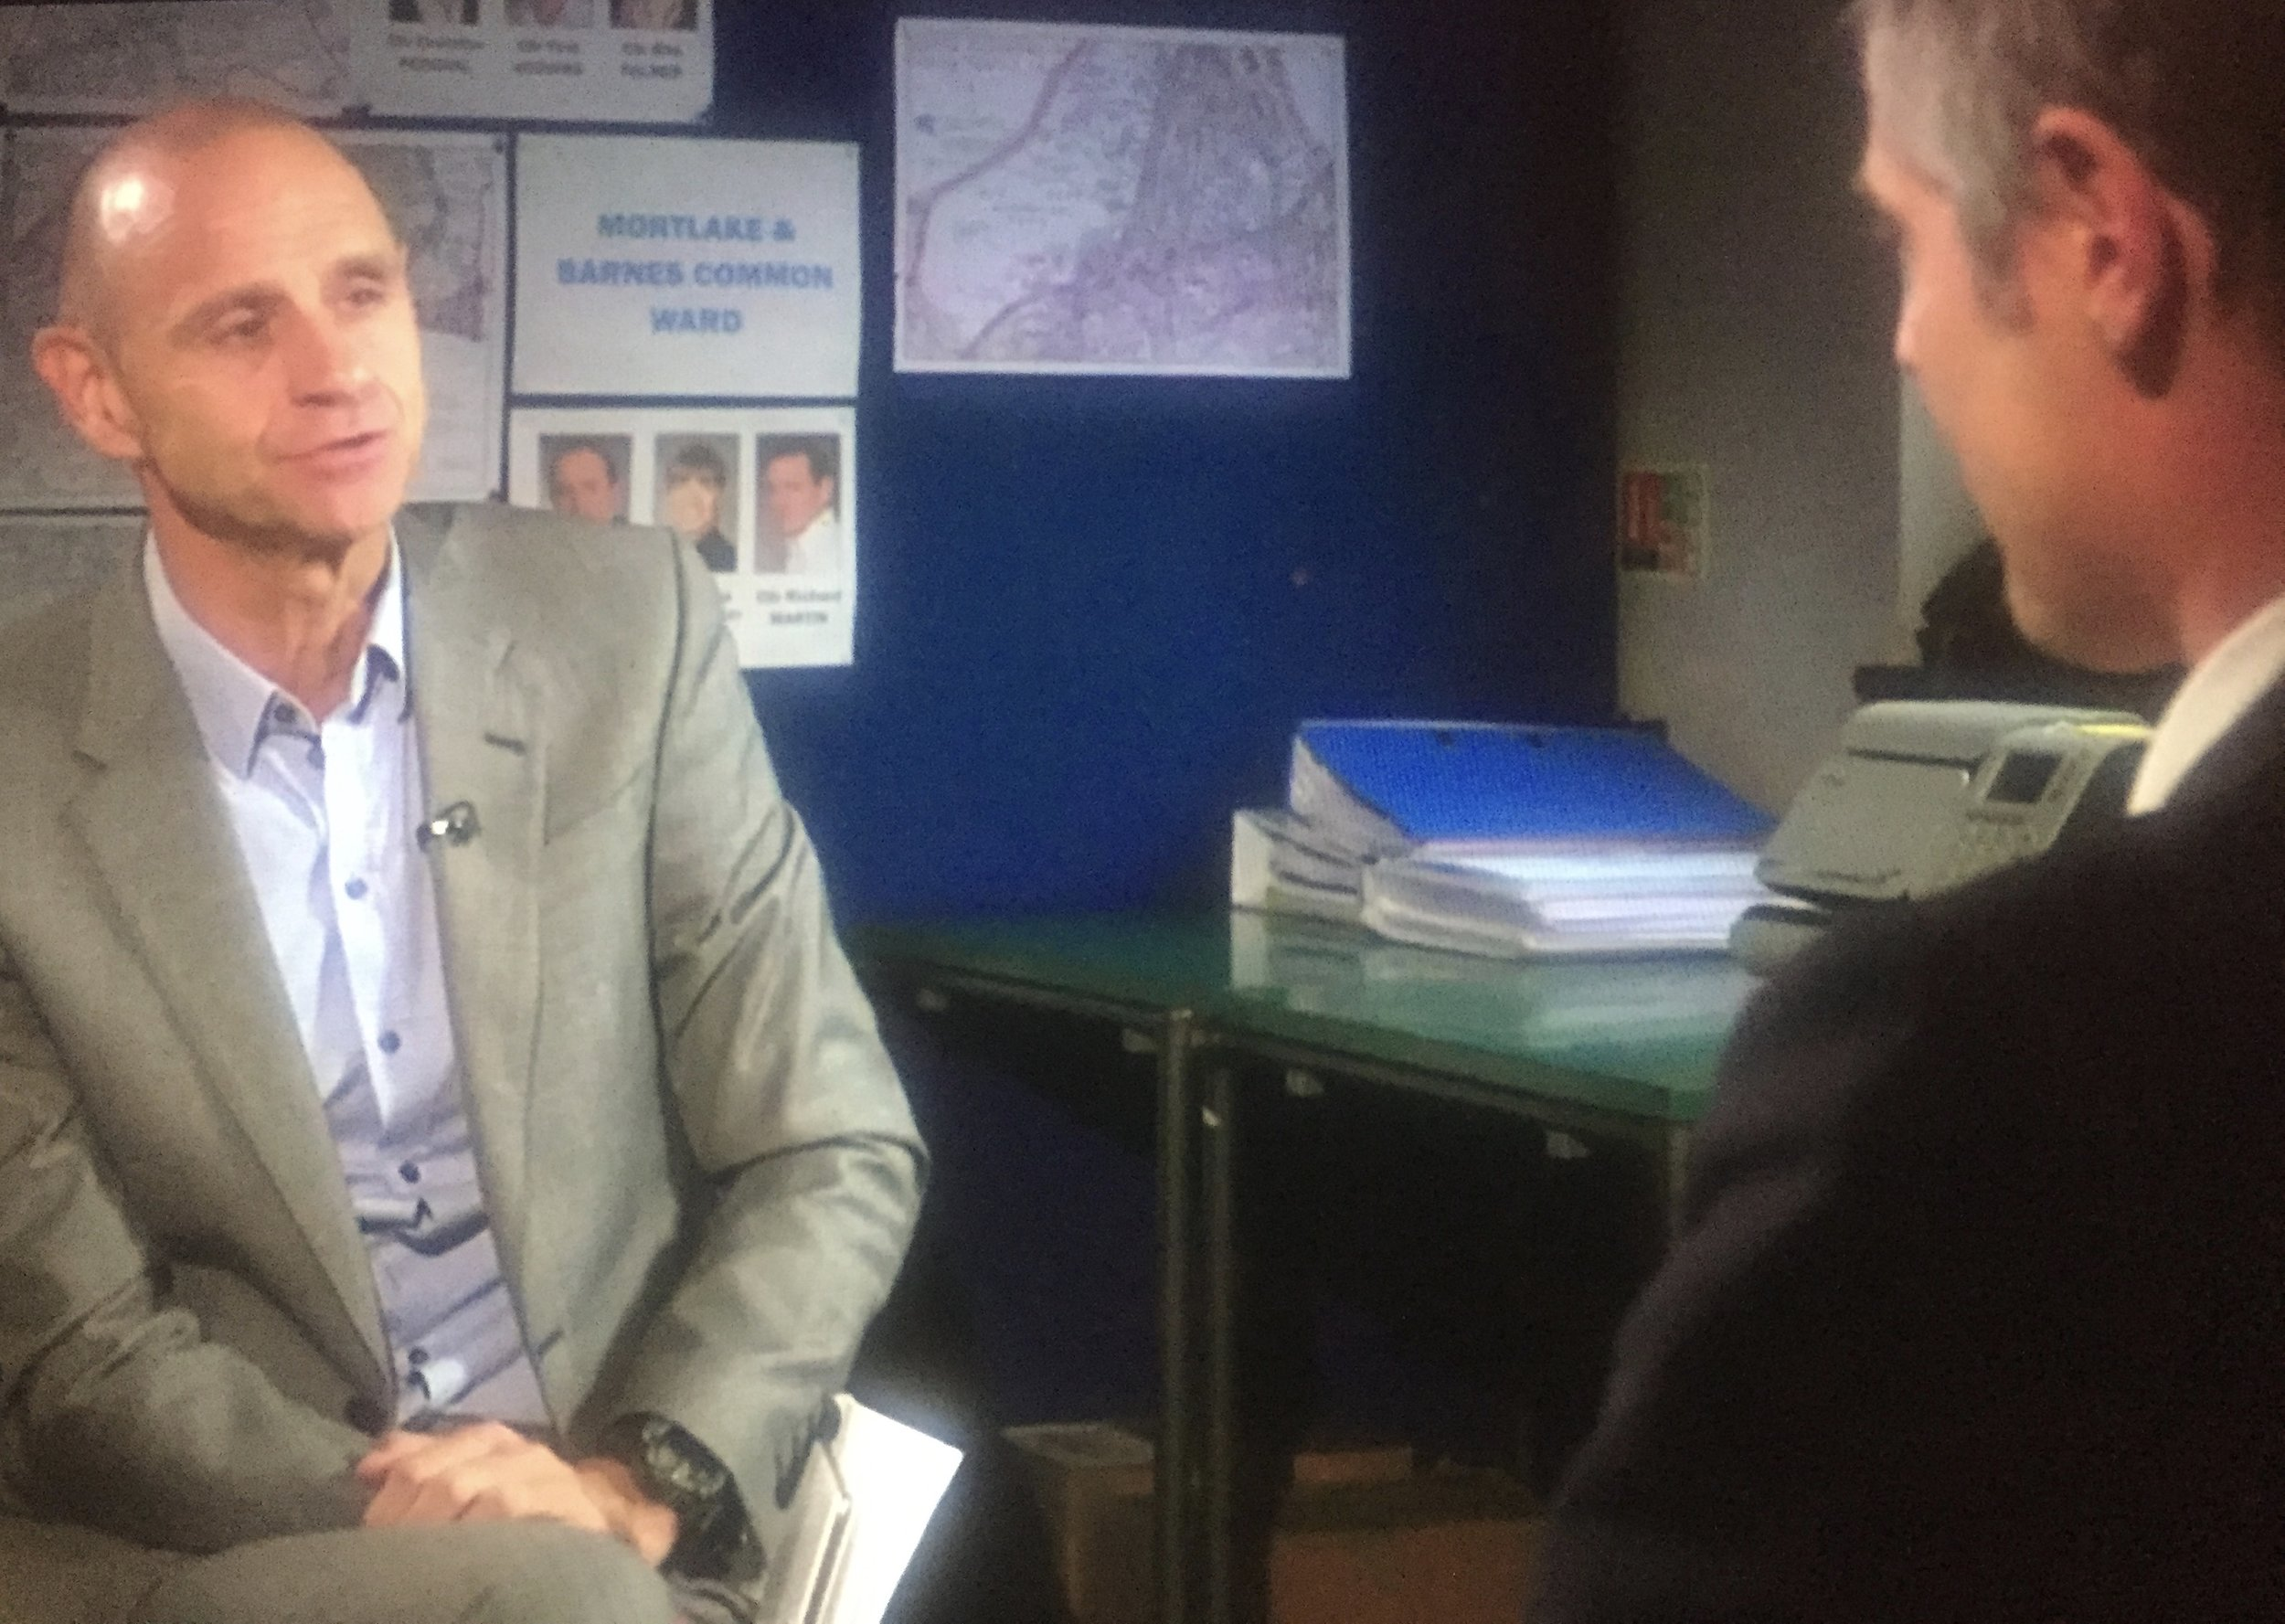 Evan Davies asks Zac about airport expansion in the South East